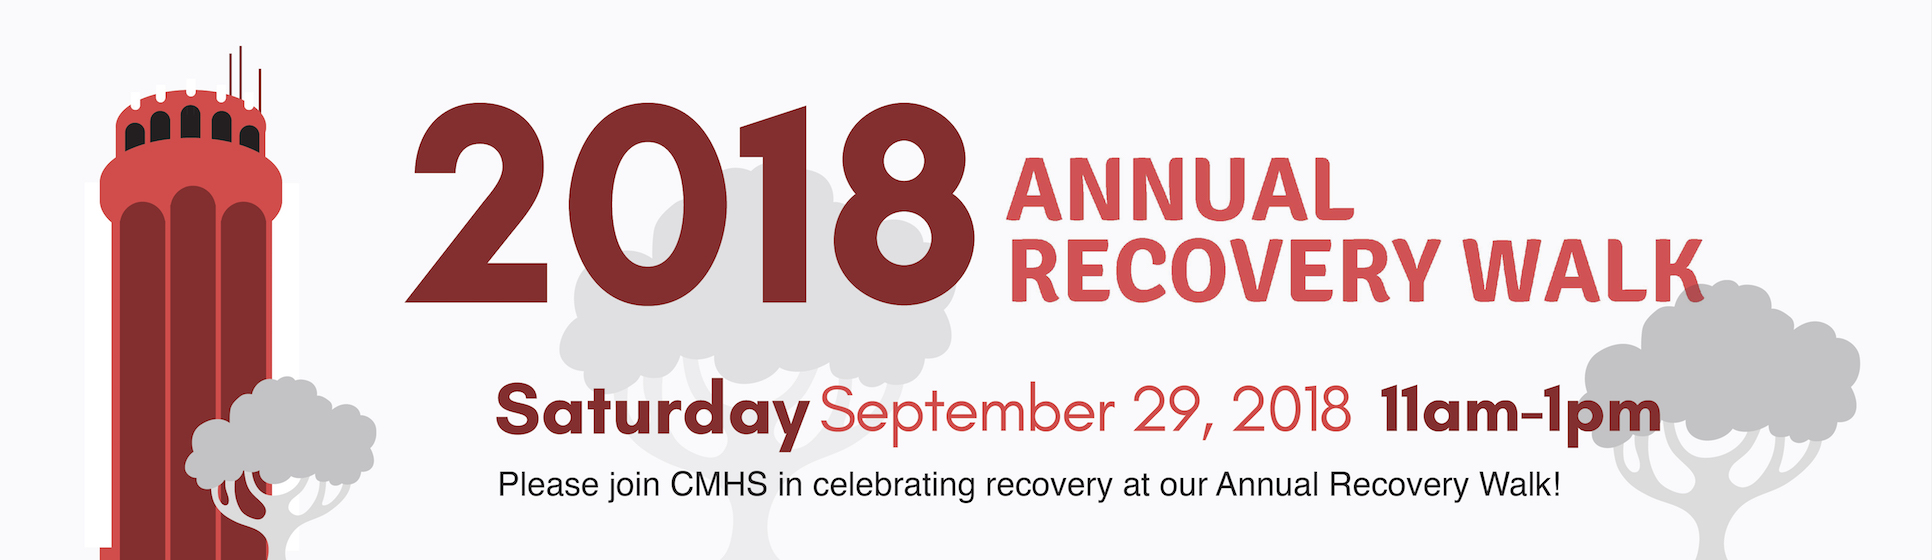 2018 Annual Recovery Walk